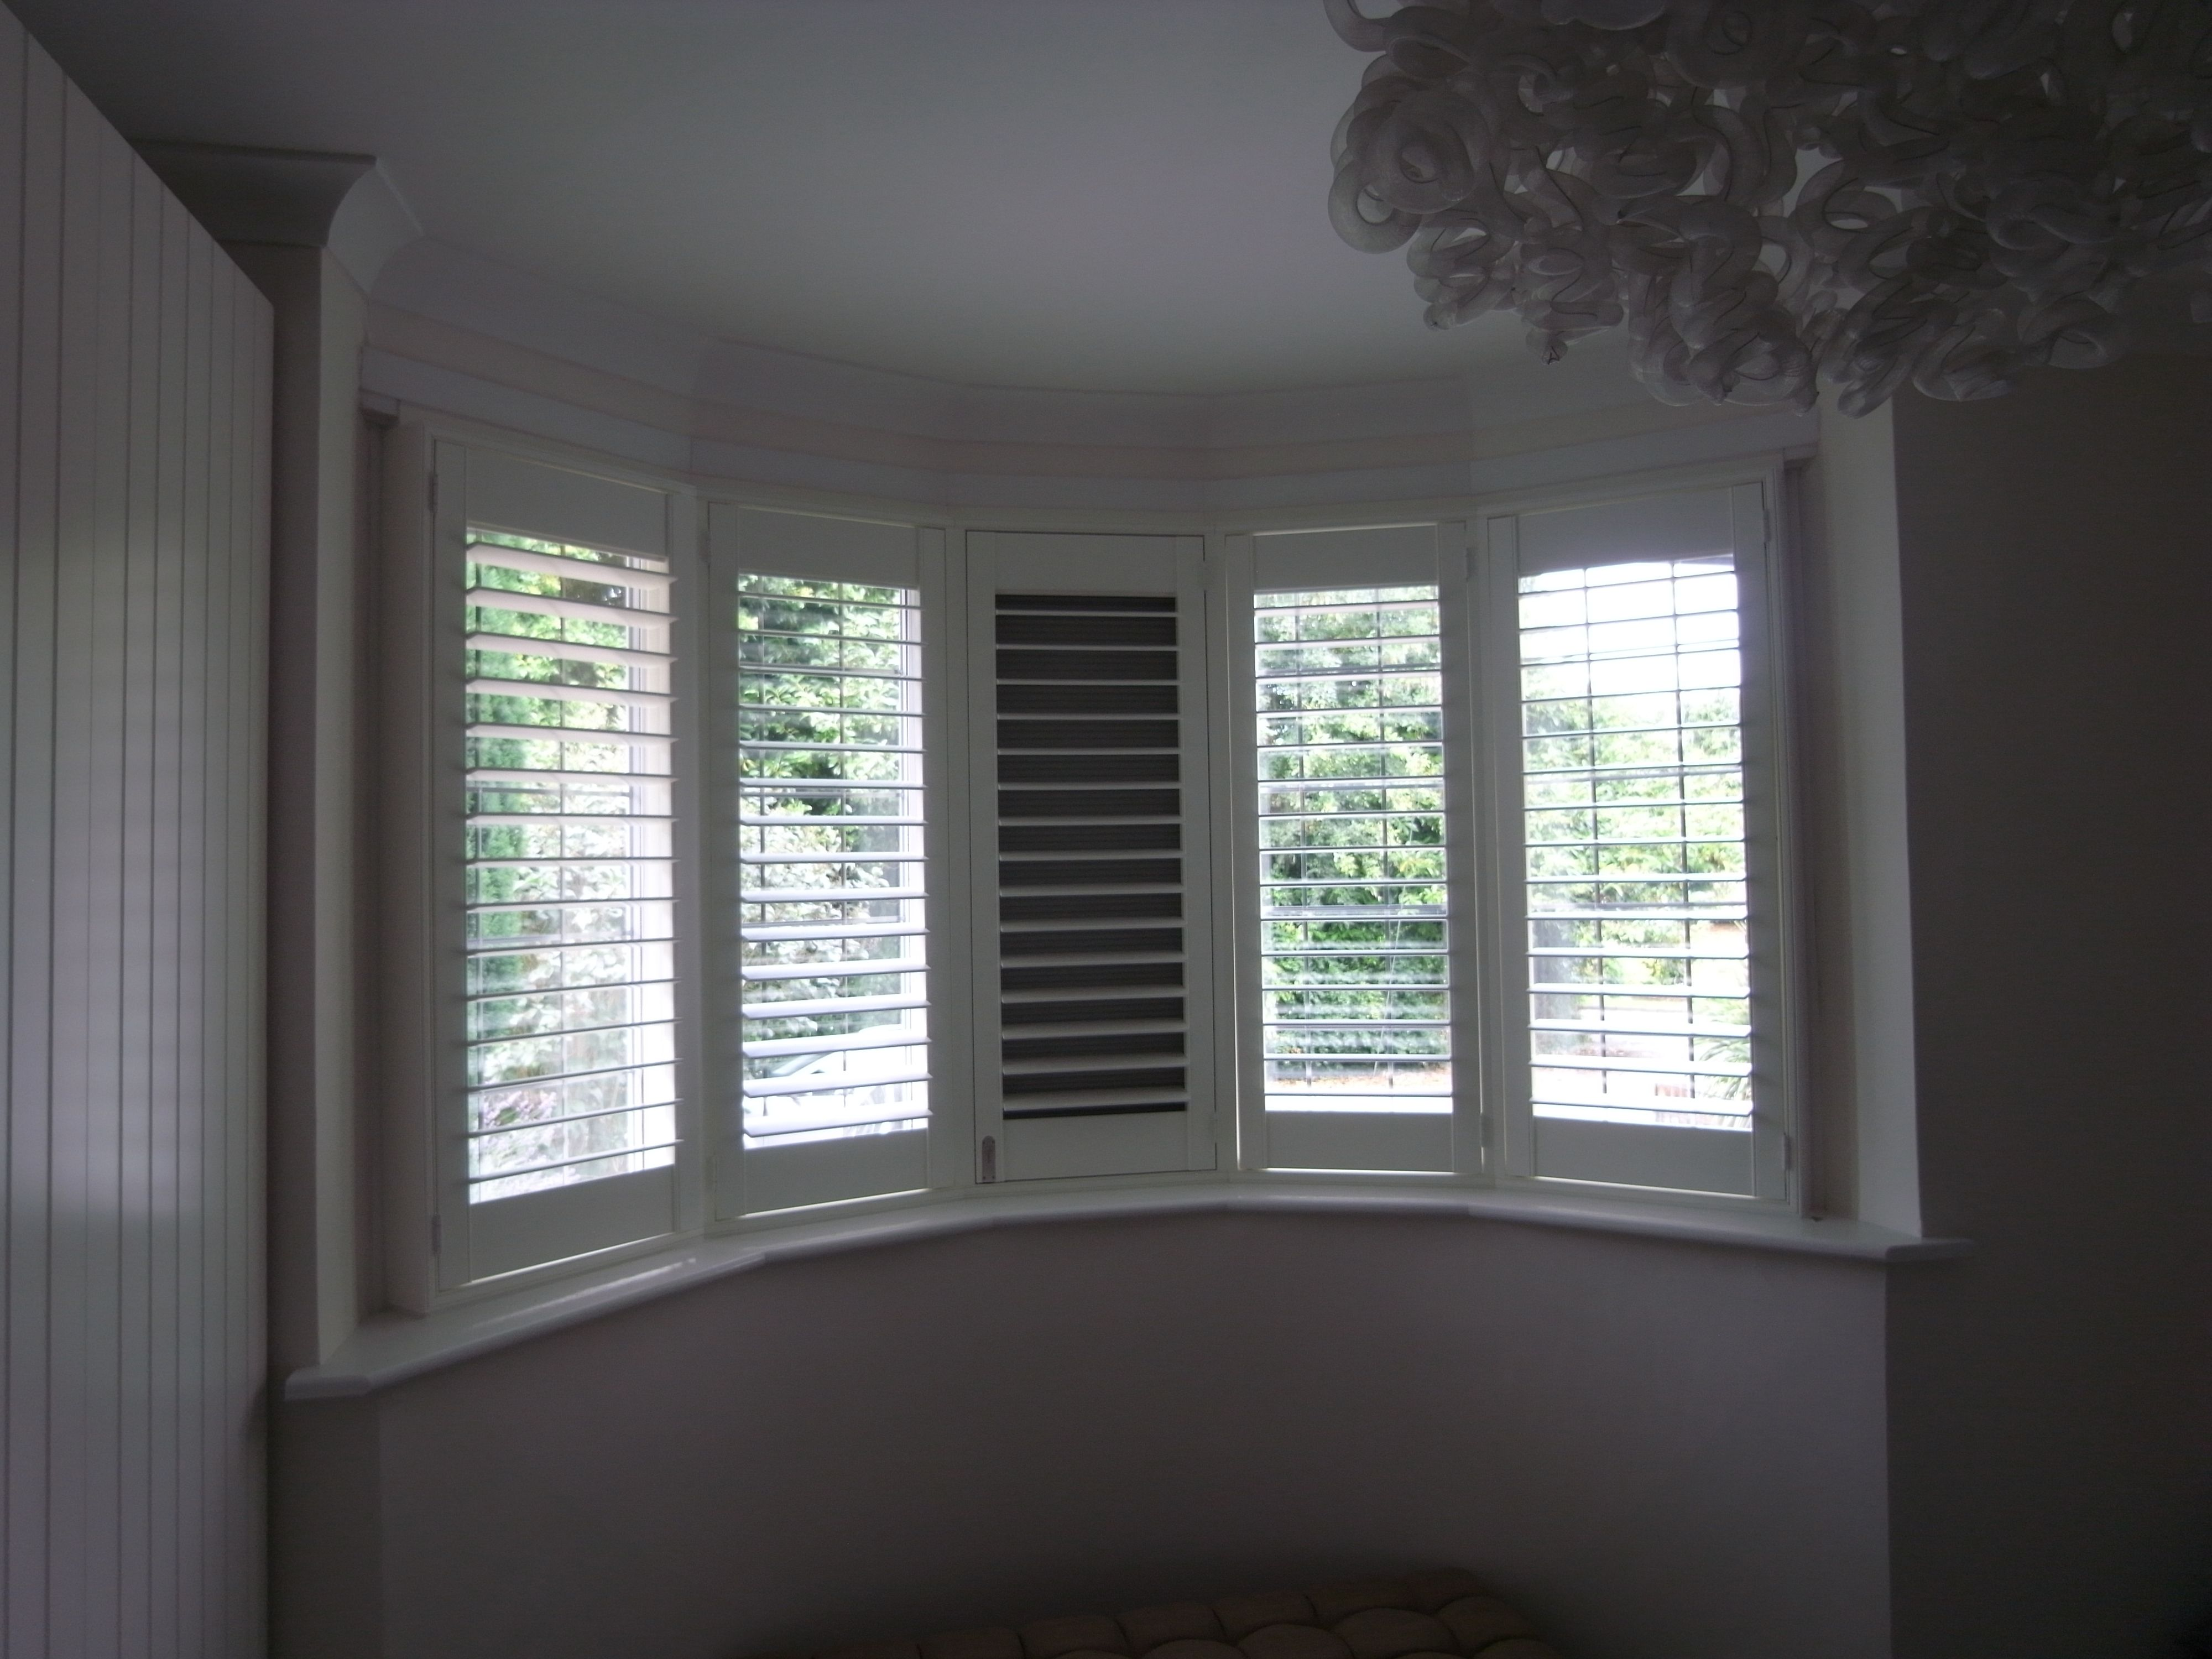 5 Panel Bay Window With Plantation Shutter And Blackout Blind Behind